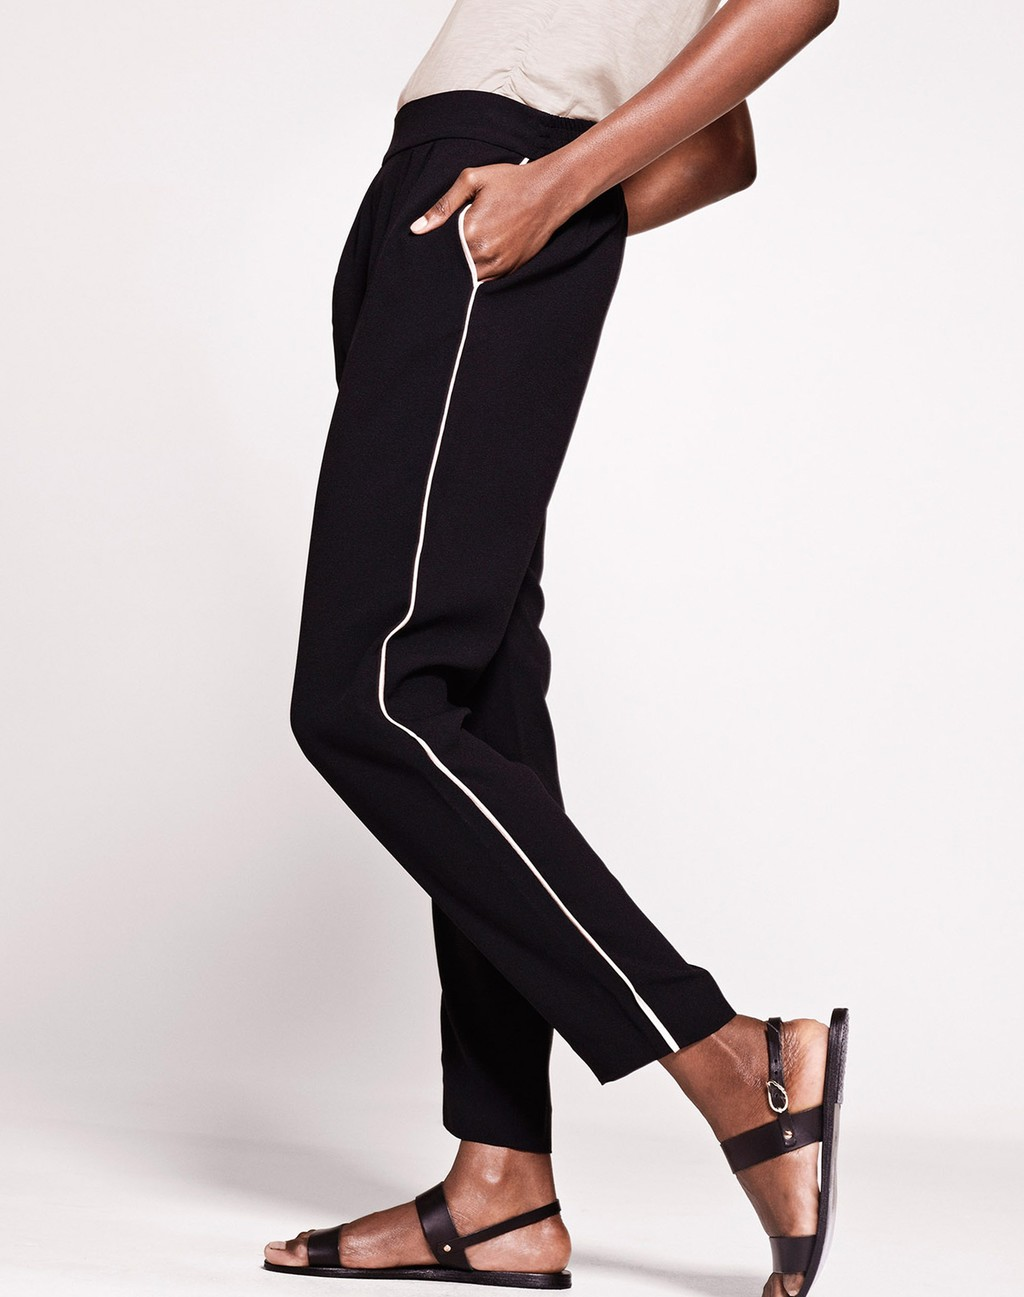 Luxe Crepe Trouser Black/Blush - length: standard; pattern: plain; waist: mid/regular rise; predominant colour: black; occasions: casual; texture group: crepes; fit: slim leg; pattern type: fabric; style: standard; fibres: viscose/rayon - mix; season: s/s 2016; wardrobe: basic